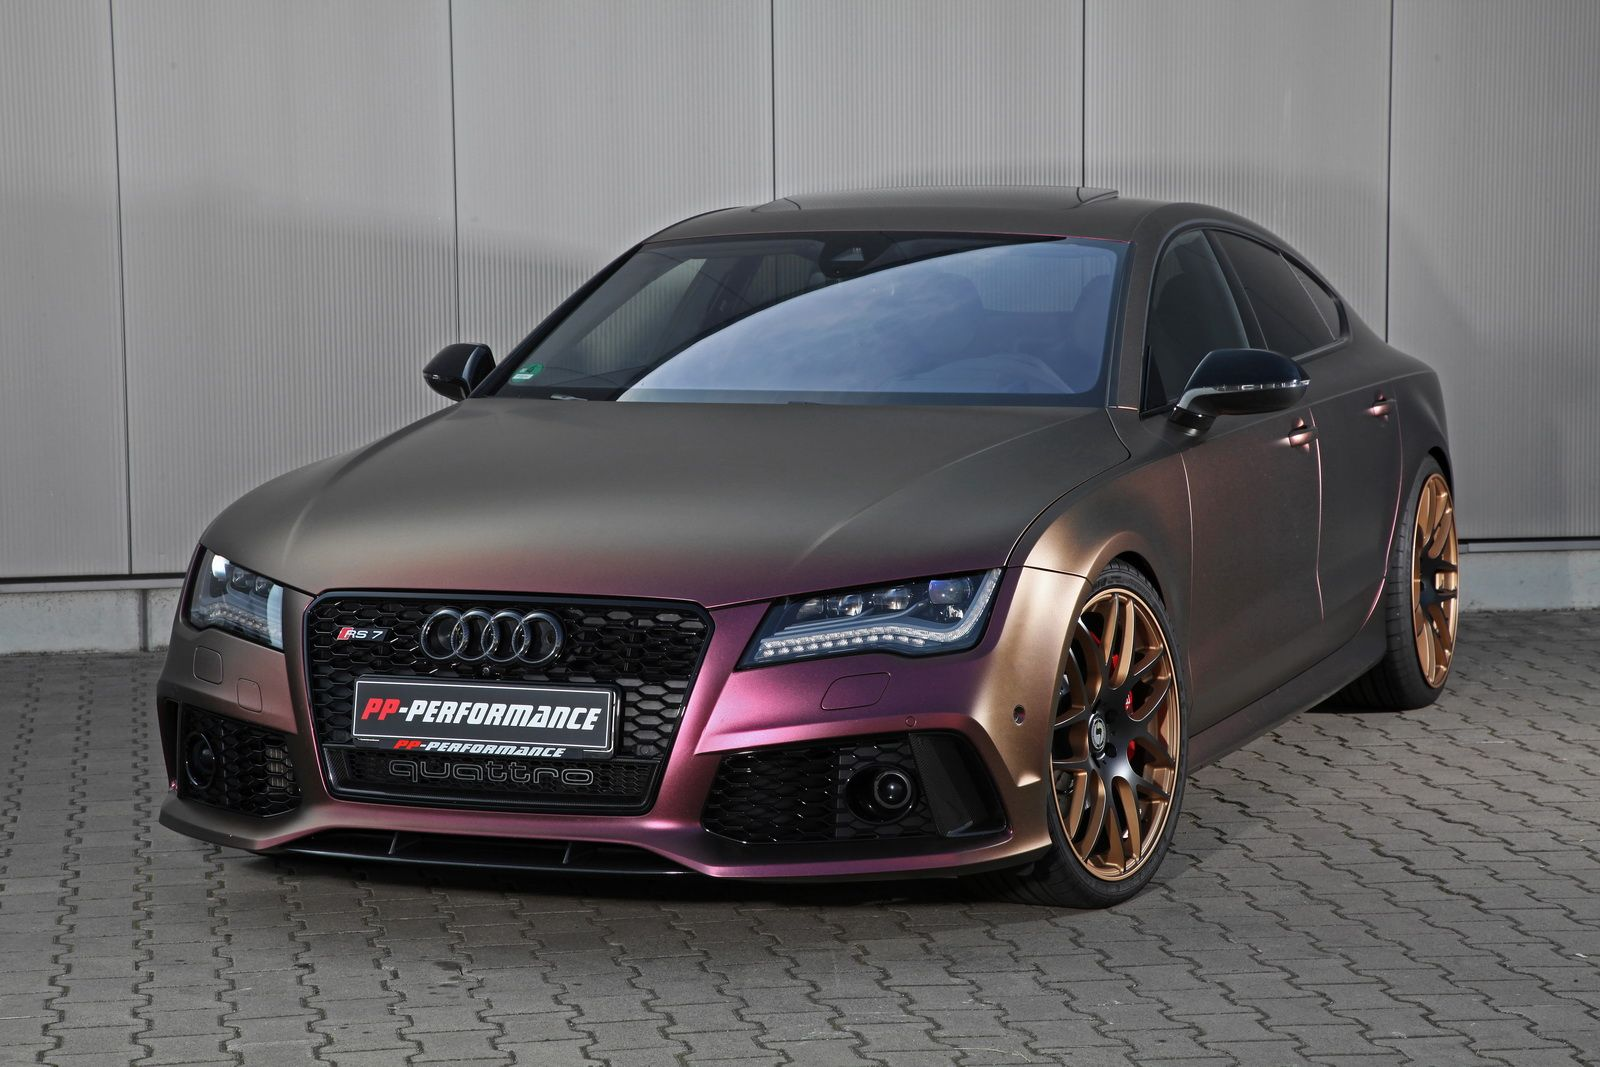 Pp Performance 745ps Audi Rs7 Can Beat Tesla S Model S P90d Ludicrous In 1 4 Mile Carscoops Audi Rs7 Audi Audi Rs7 Sportback 2013 audi tt rs by pp performance